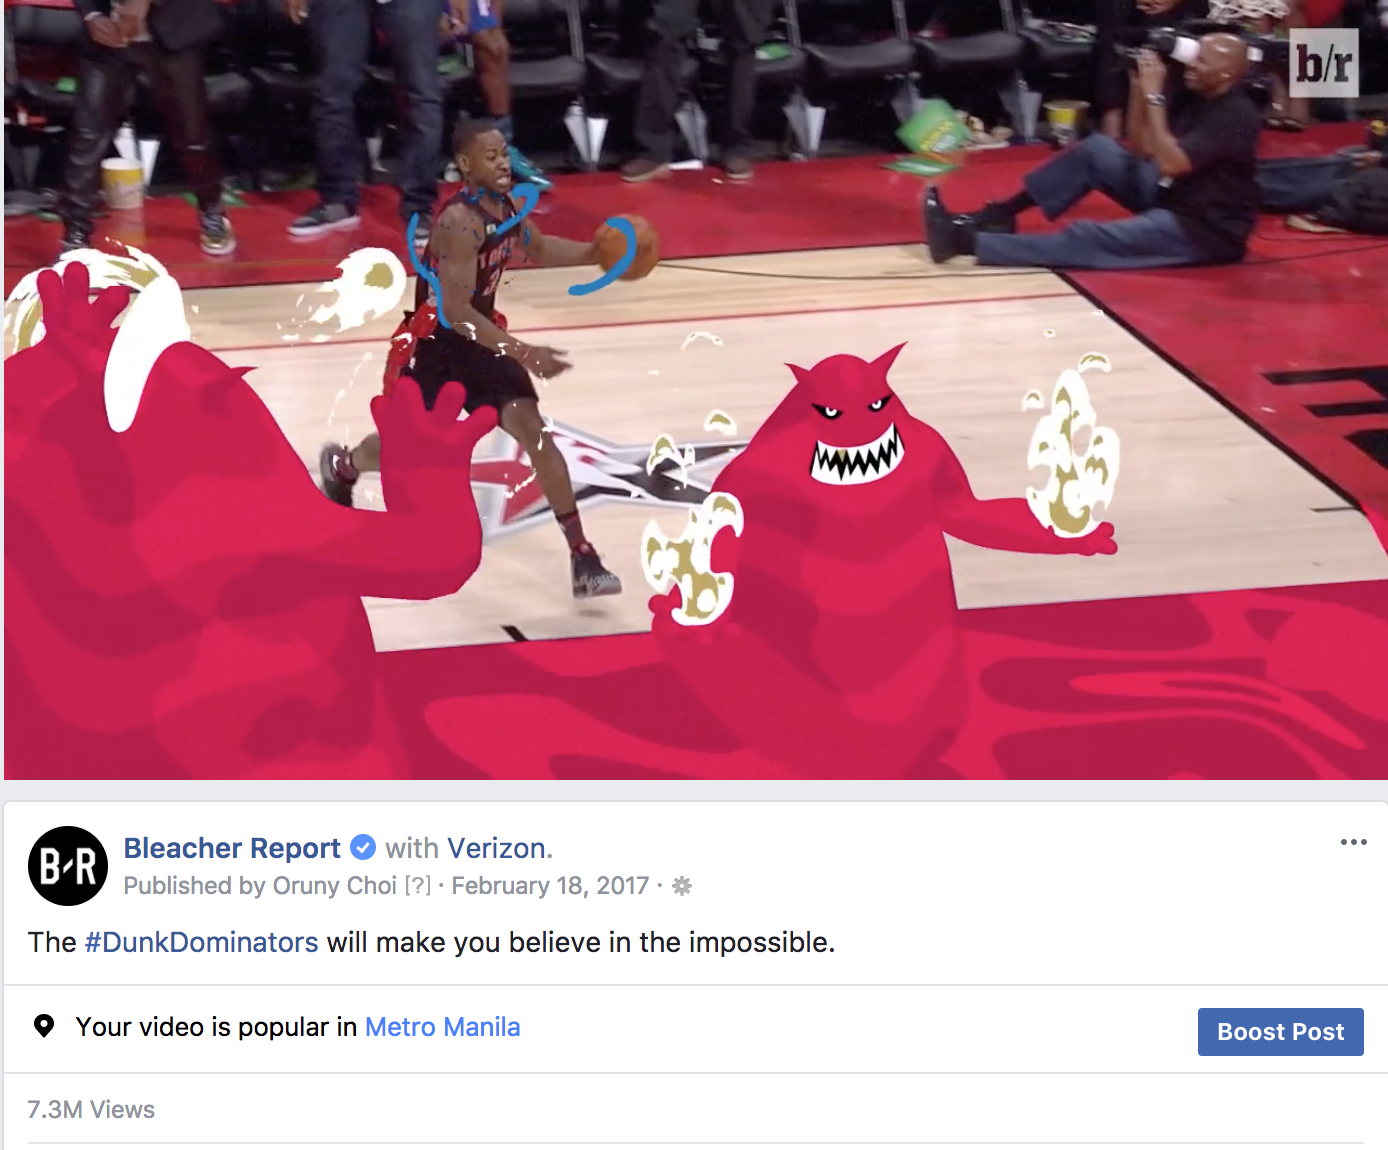 Image Media for Bleacher Report NBA Dunk Dominators